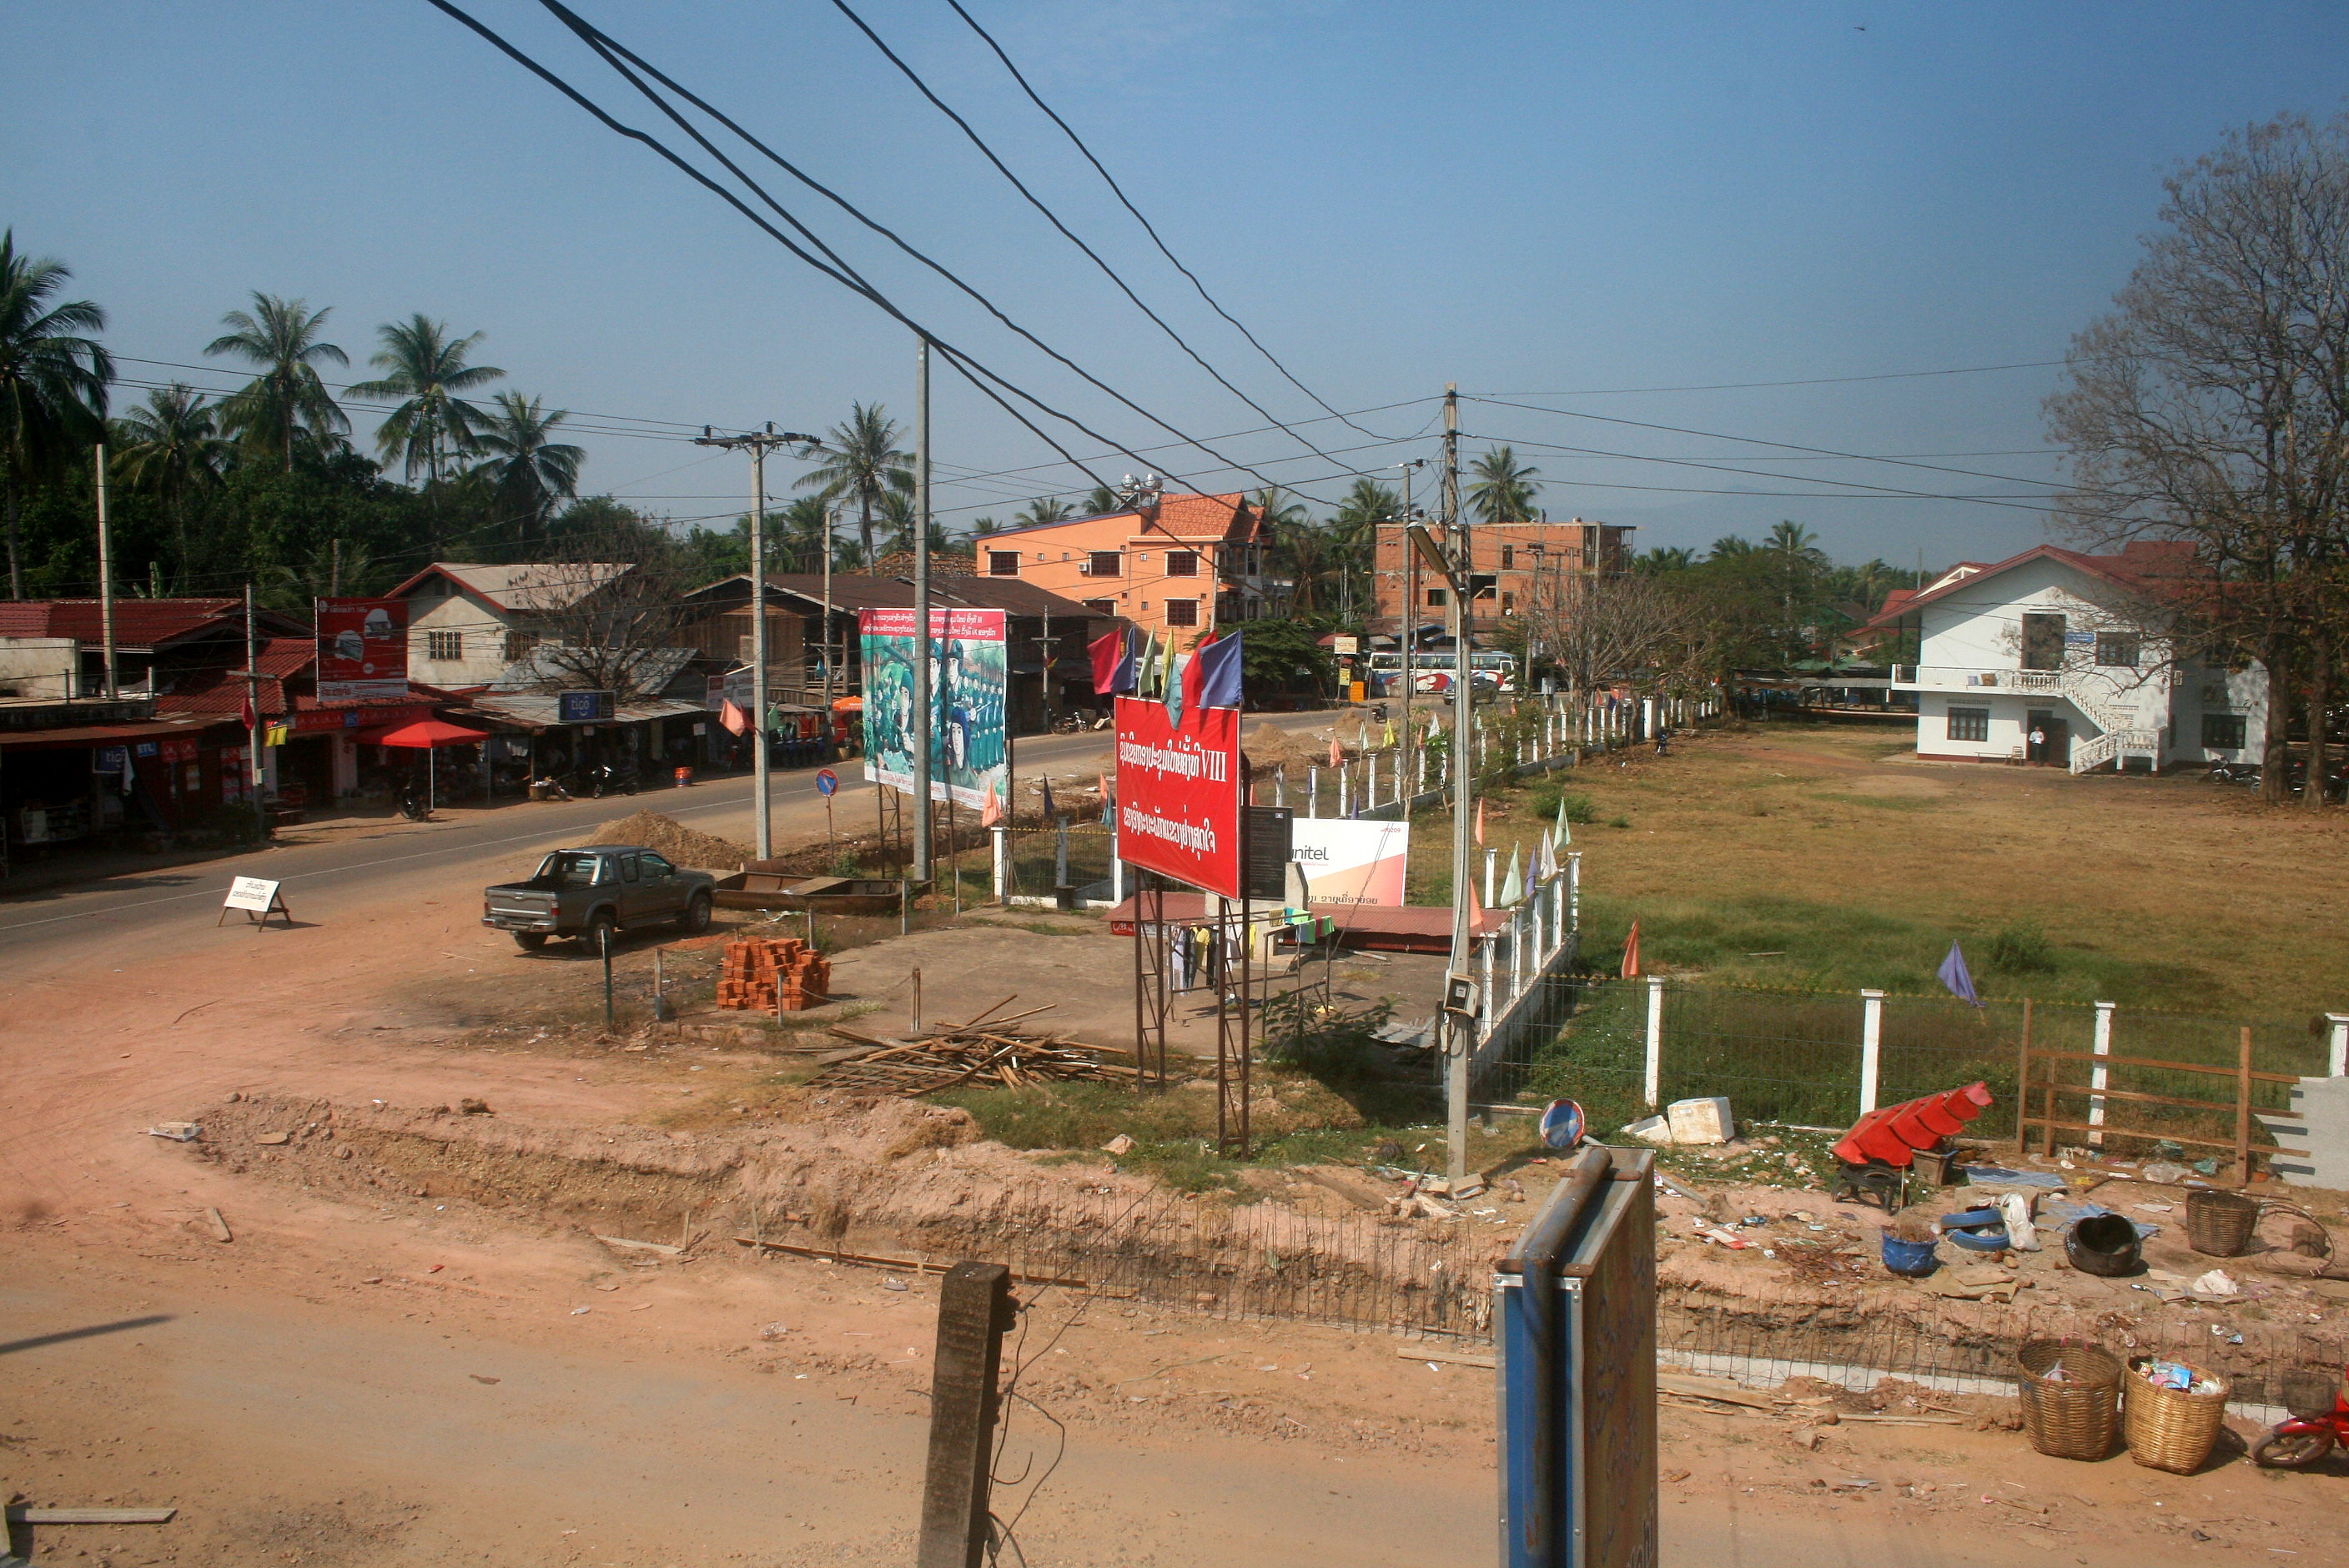 Attapeu Laos  city images : Attapeu town Wikimedia Commons